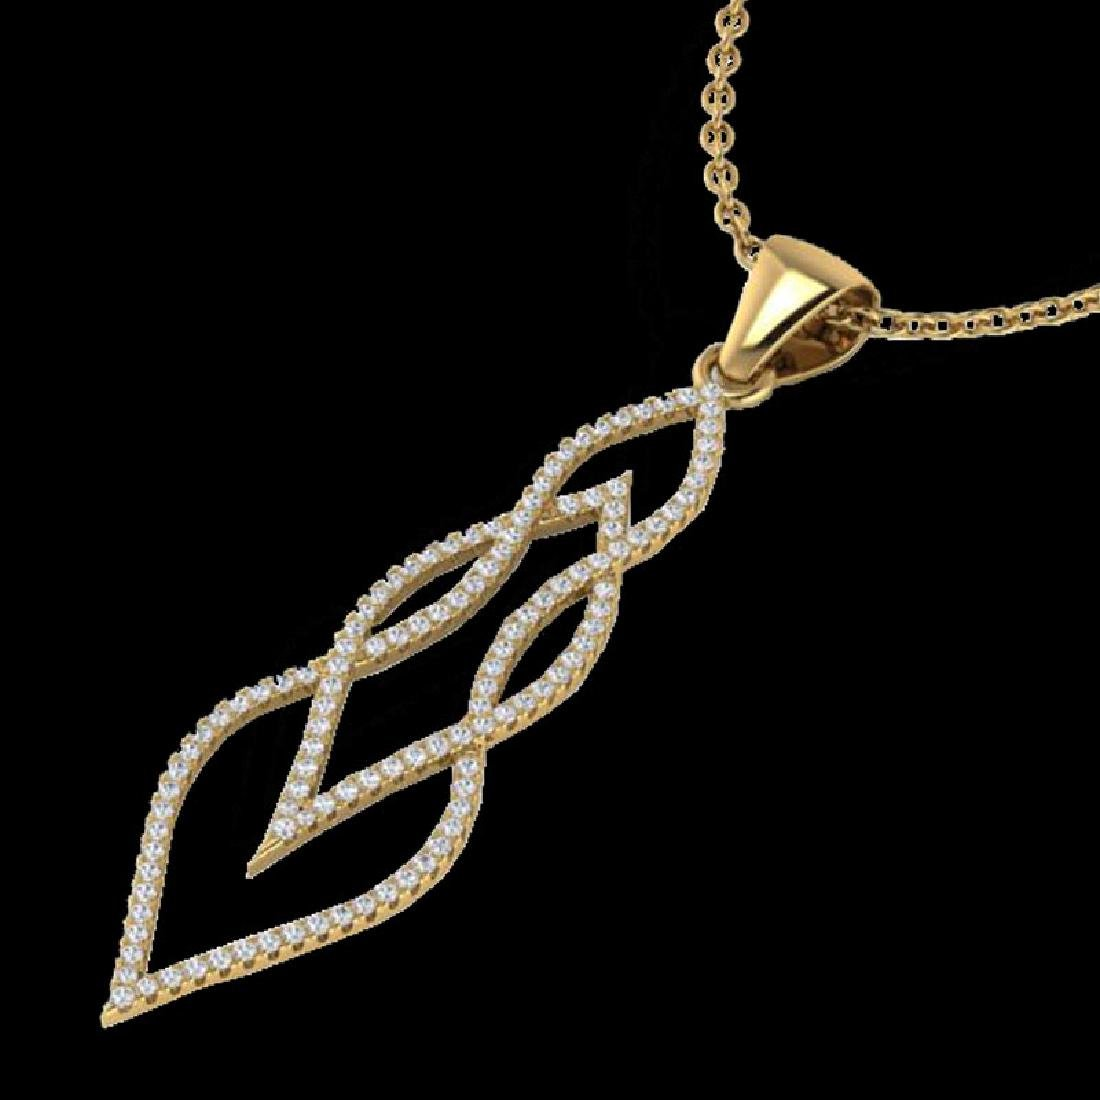 0.80 CTW Micro Pave VS/SI Diamond Necklace 14K Yellow - 2